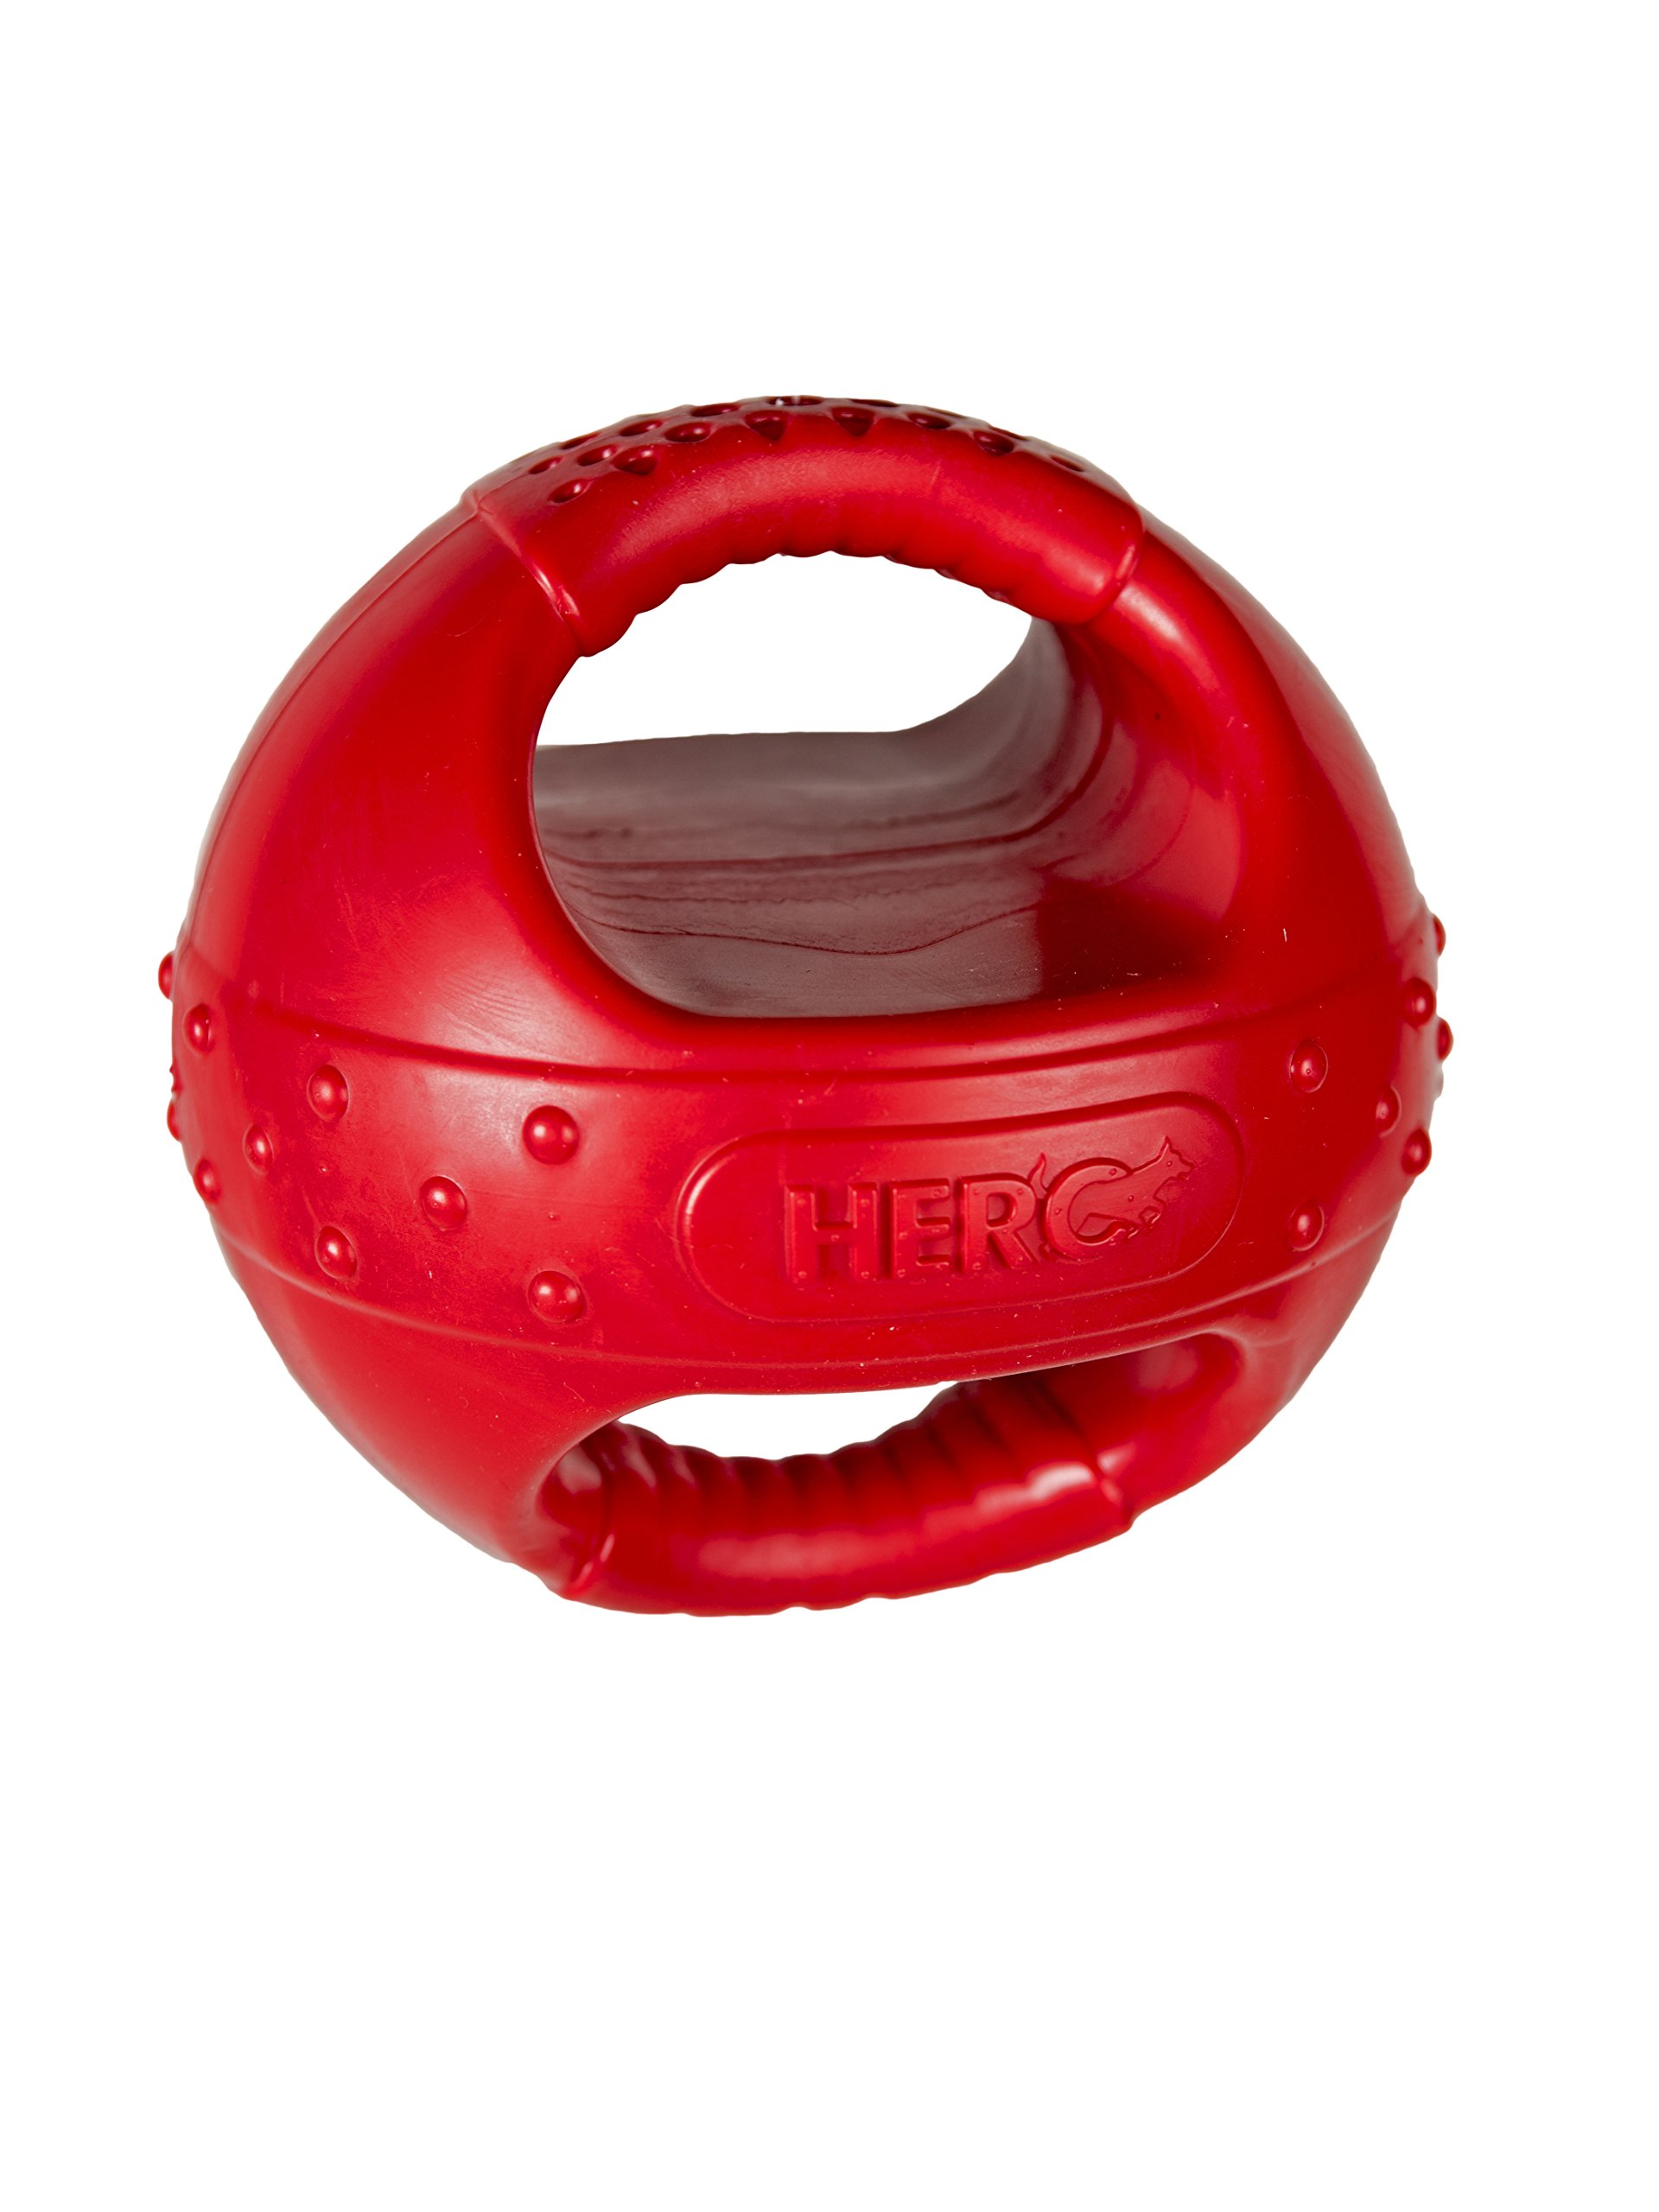 Hero Playtime Soft Rubber KettleBall, Red Dog Toy